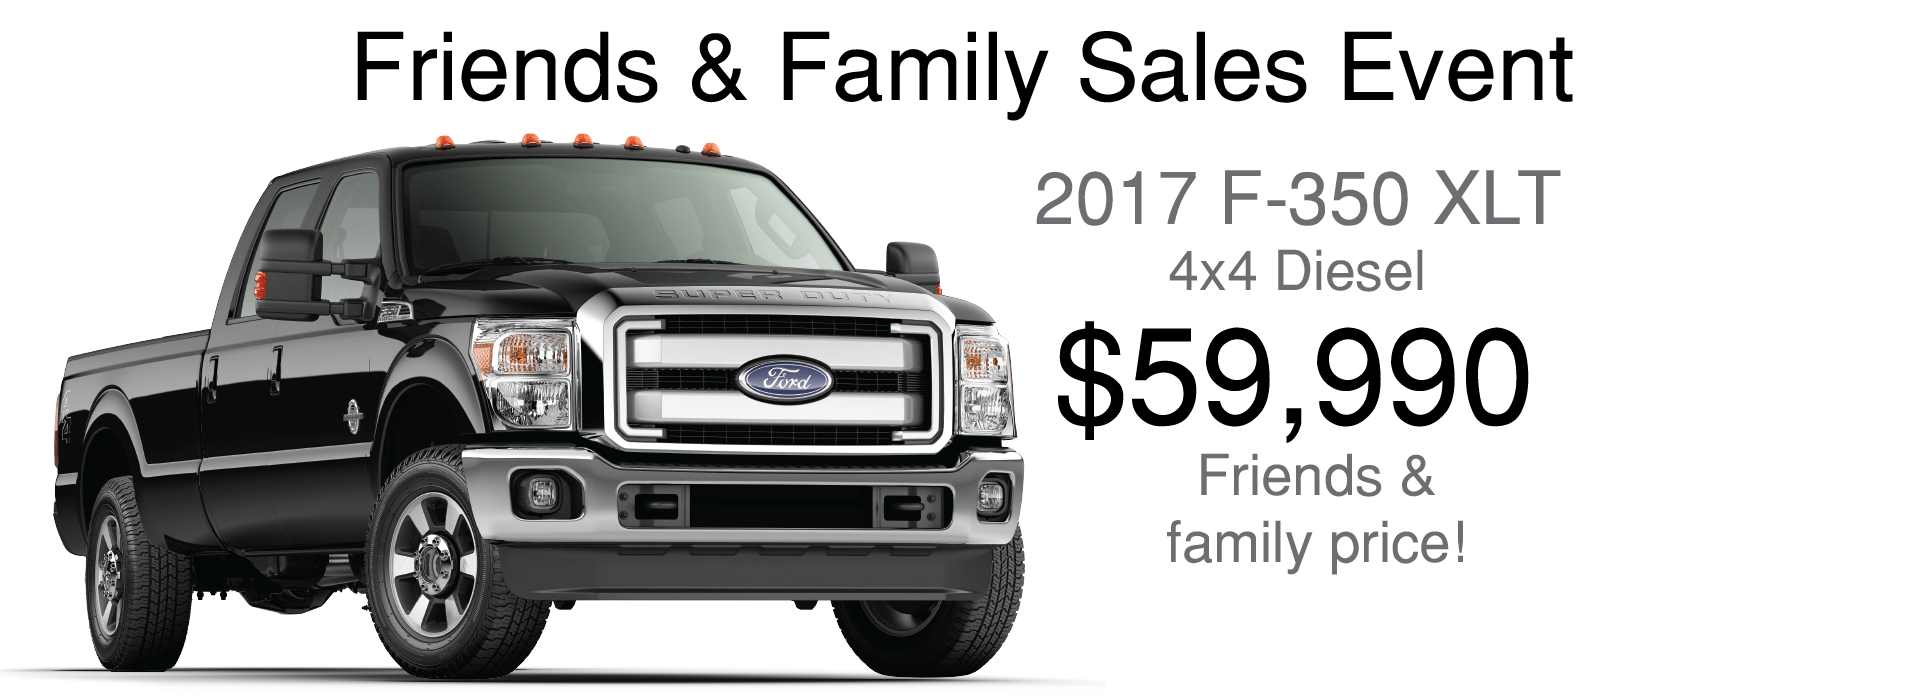 2017 Ford F-350 XLT 4x4 Diesel Friends and Family Price:$52,390